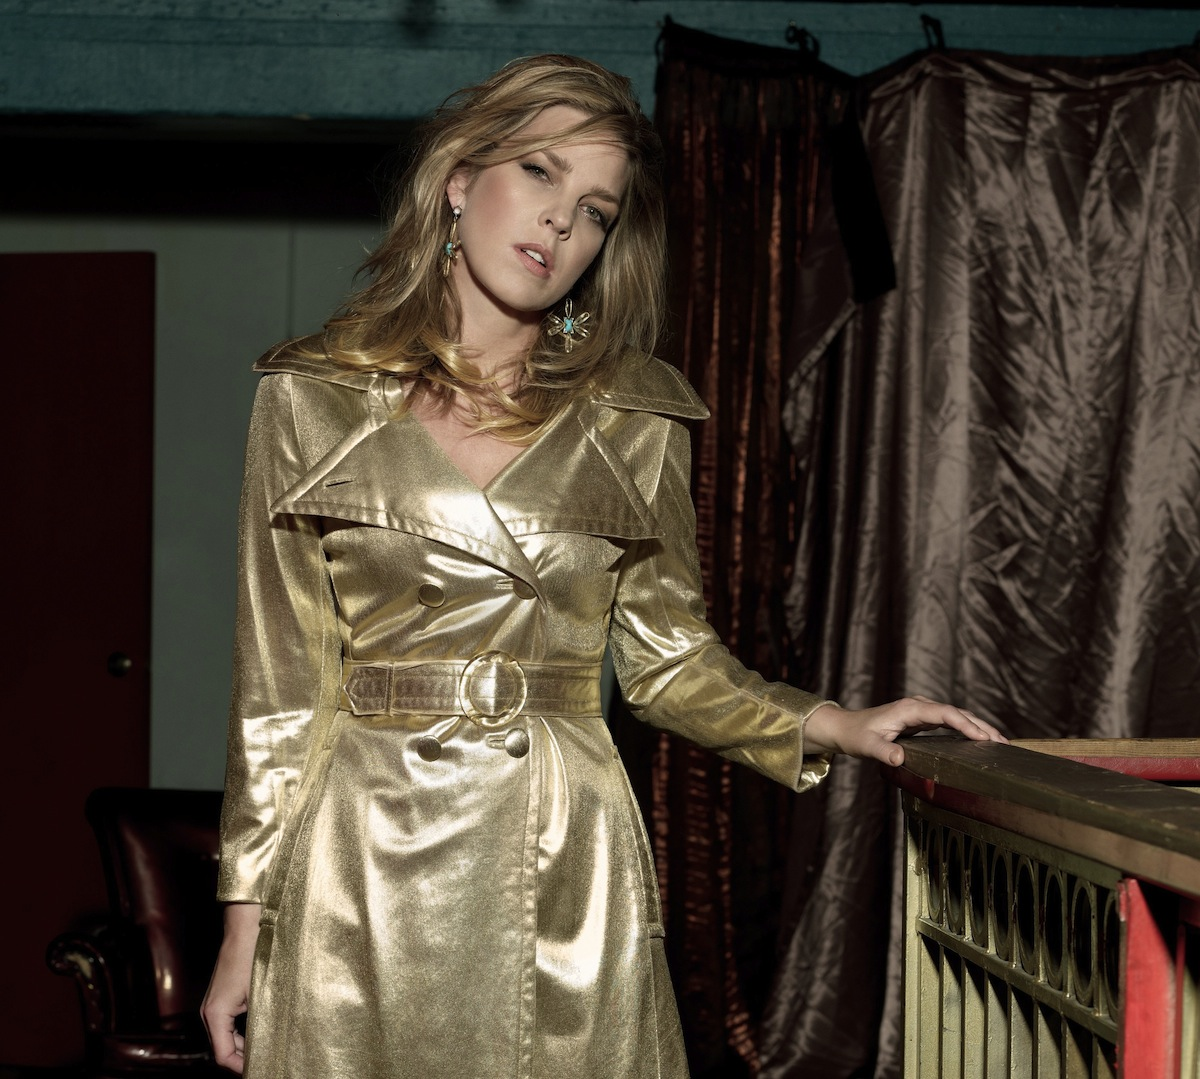 Diana Krall returns to Western New York